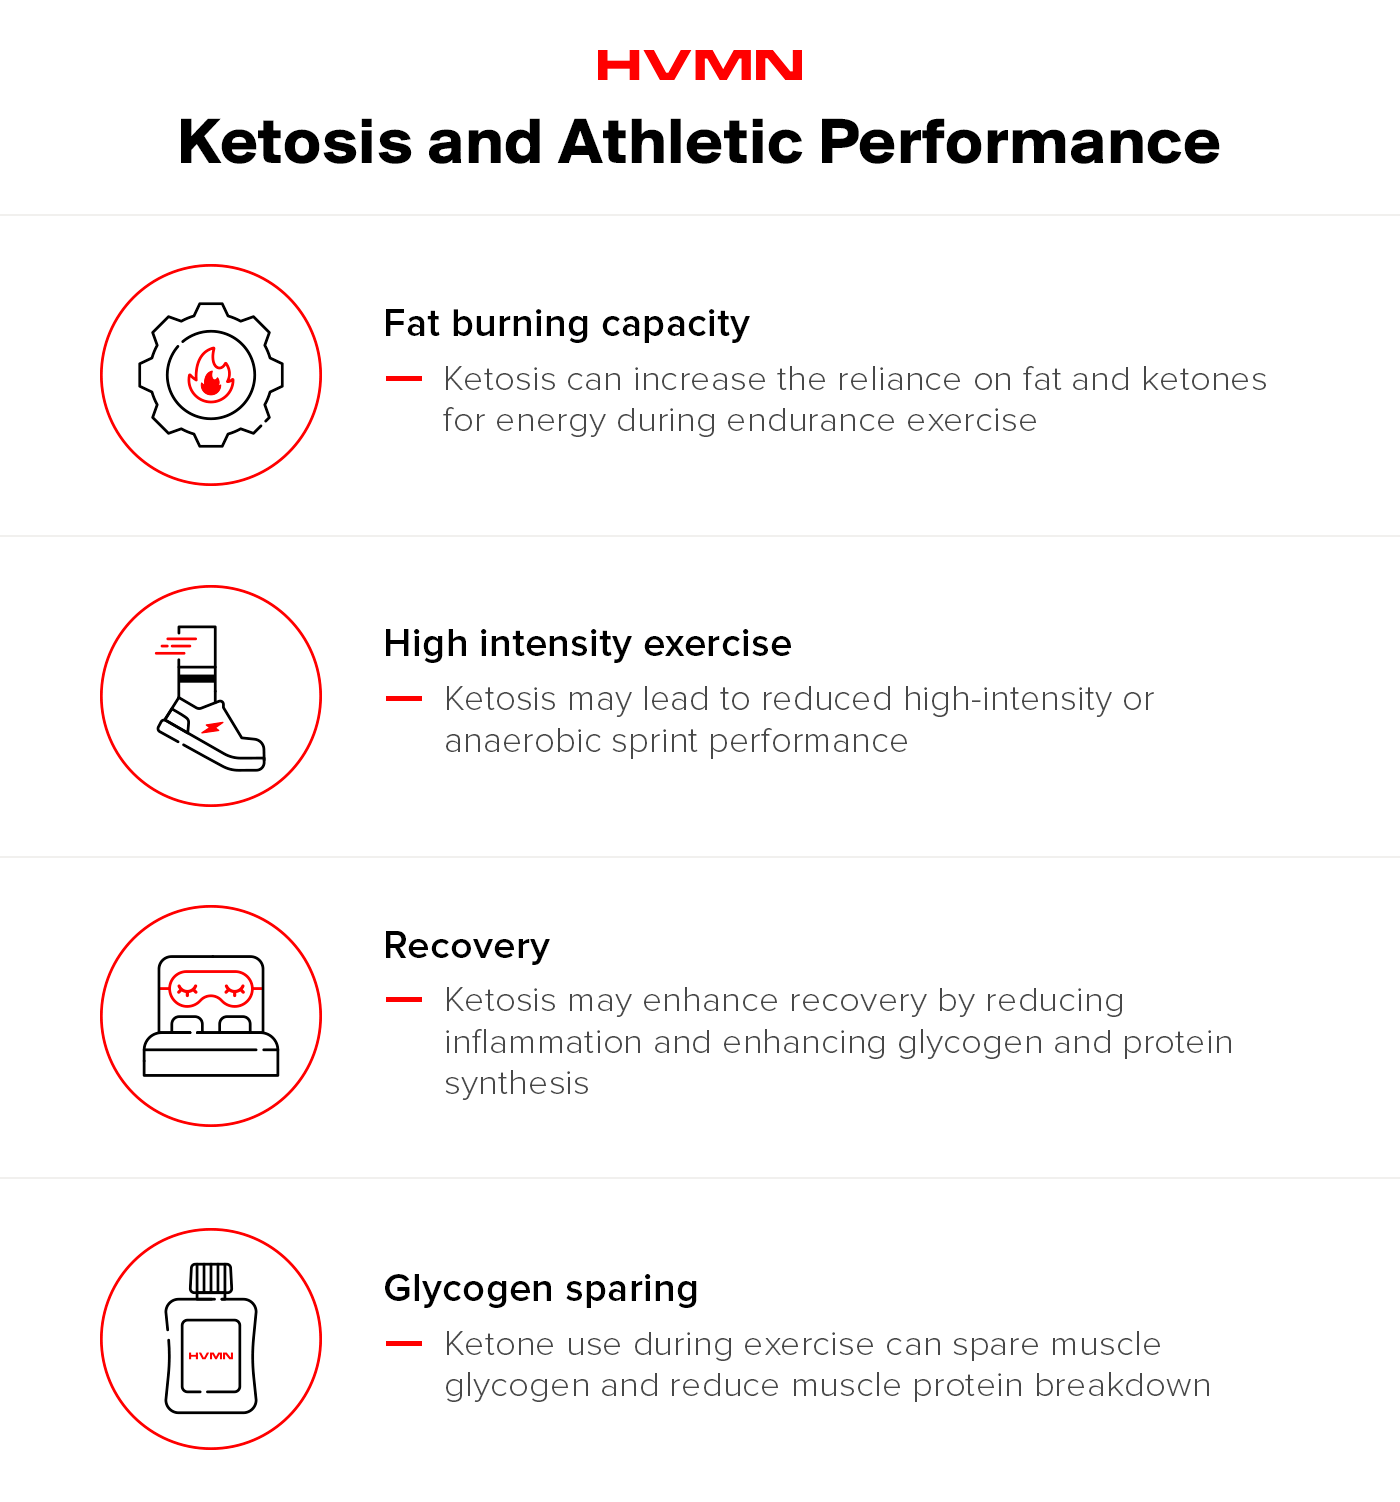 Applications of ketosis for athletic performance.